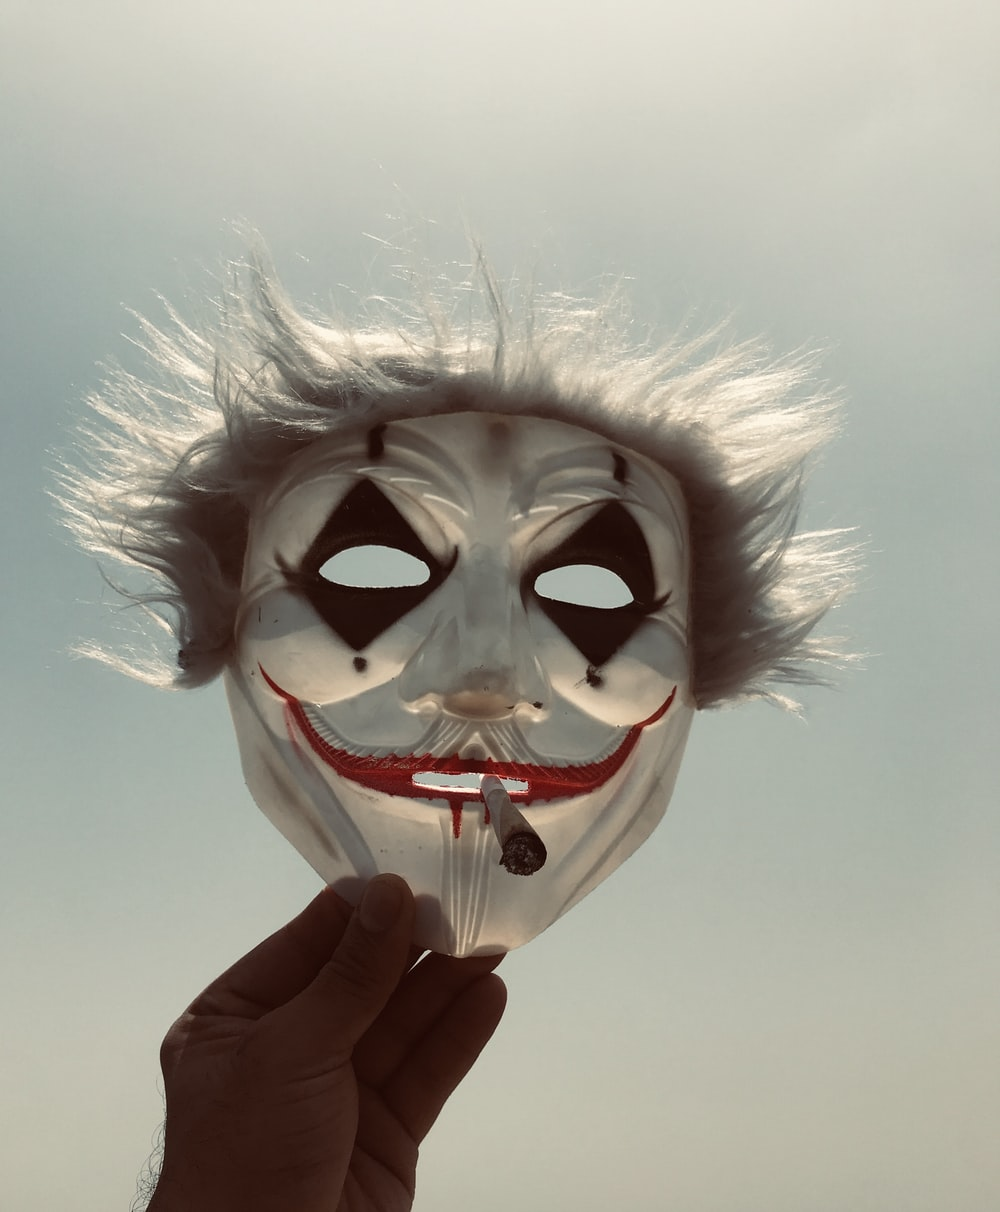 person holding white and red mask